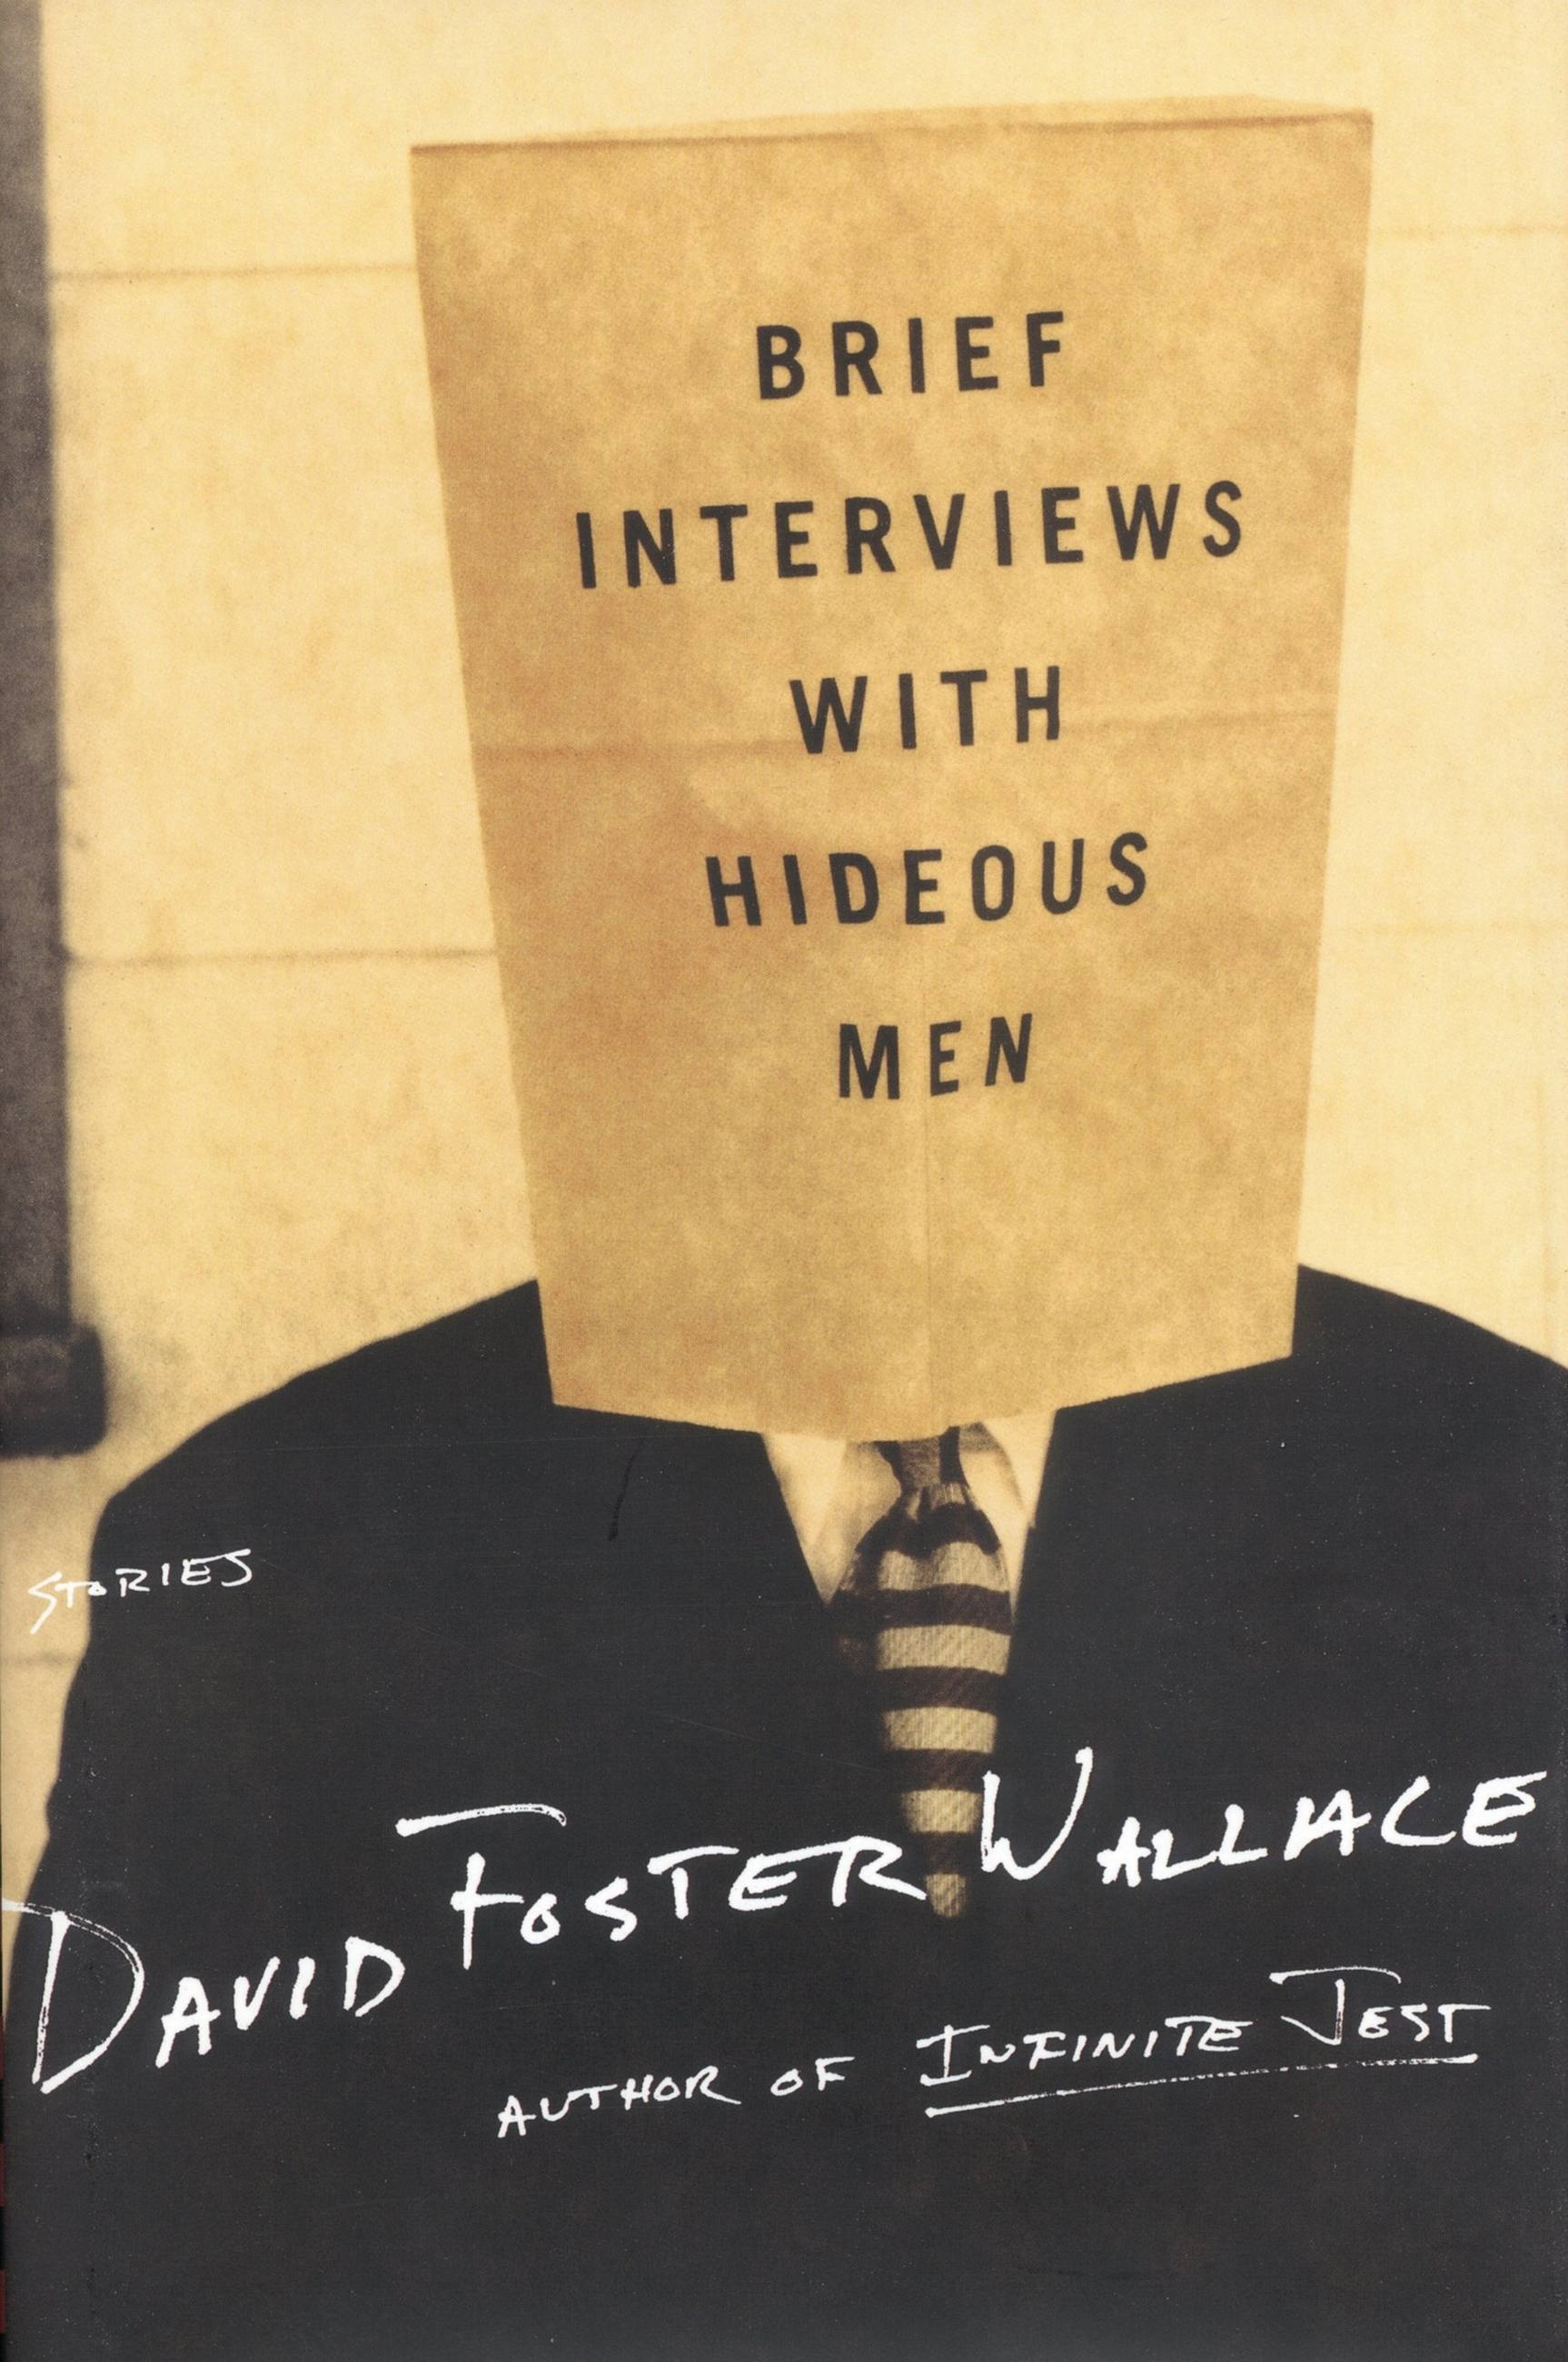 Image result for brief interviews with hideous men